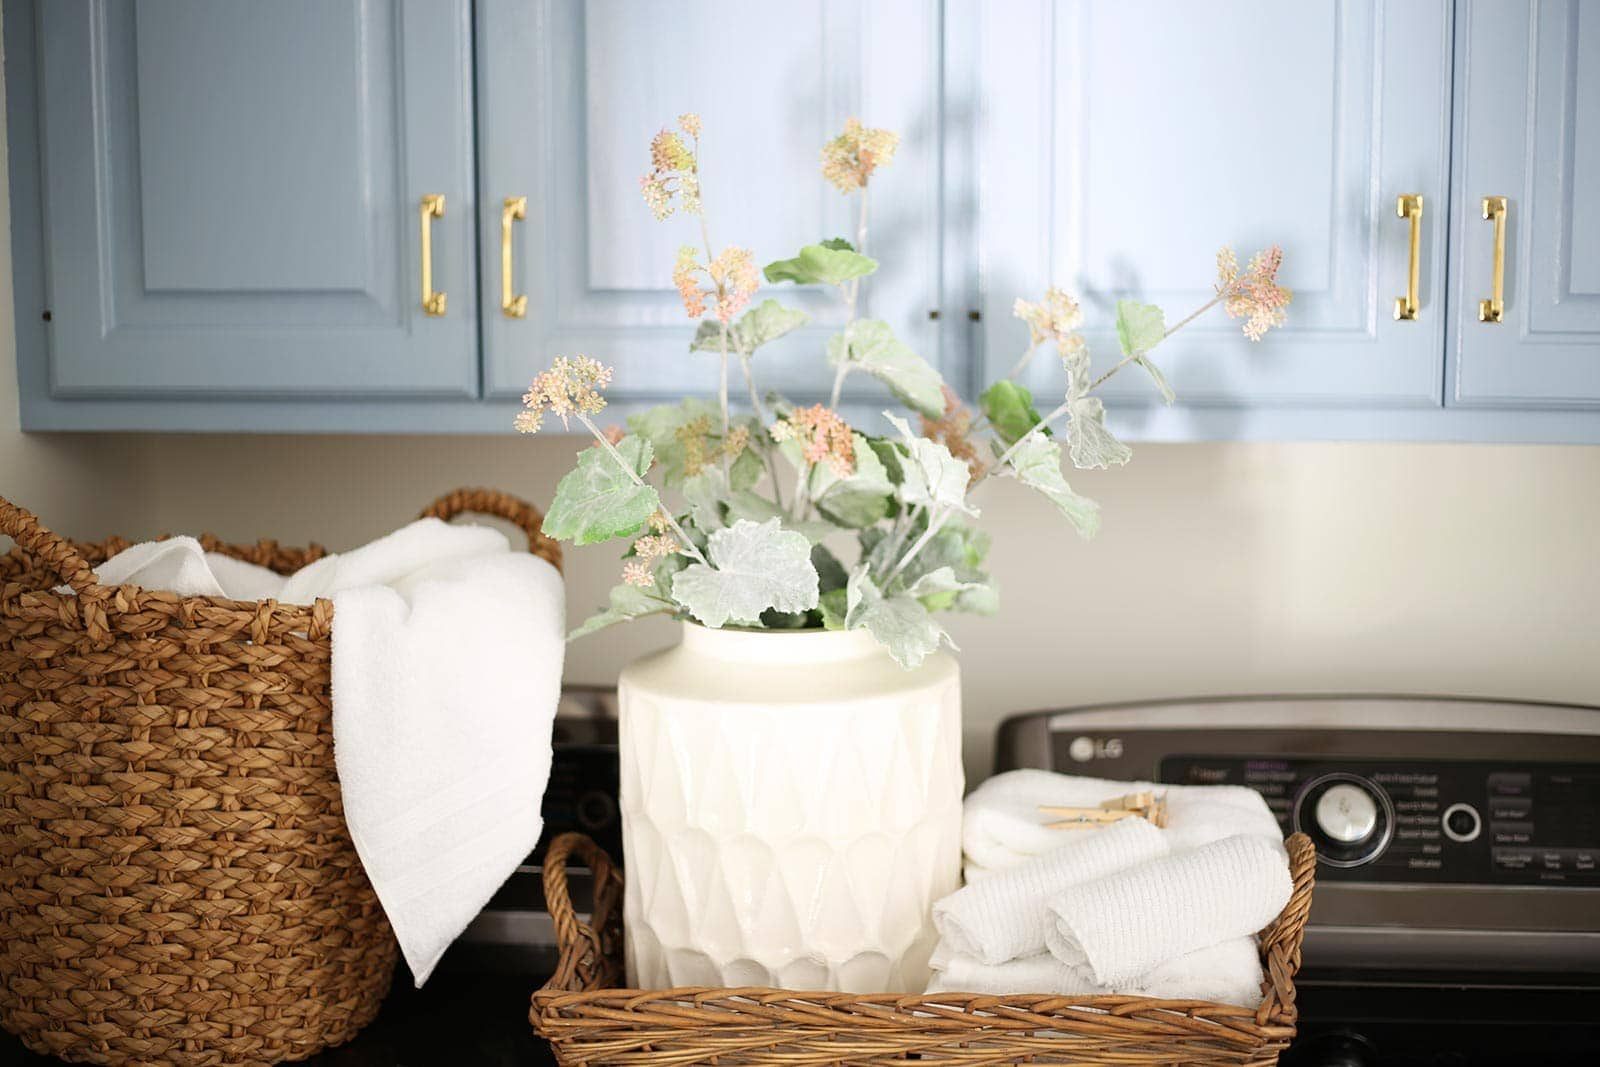 baskets and towels in laundry room